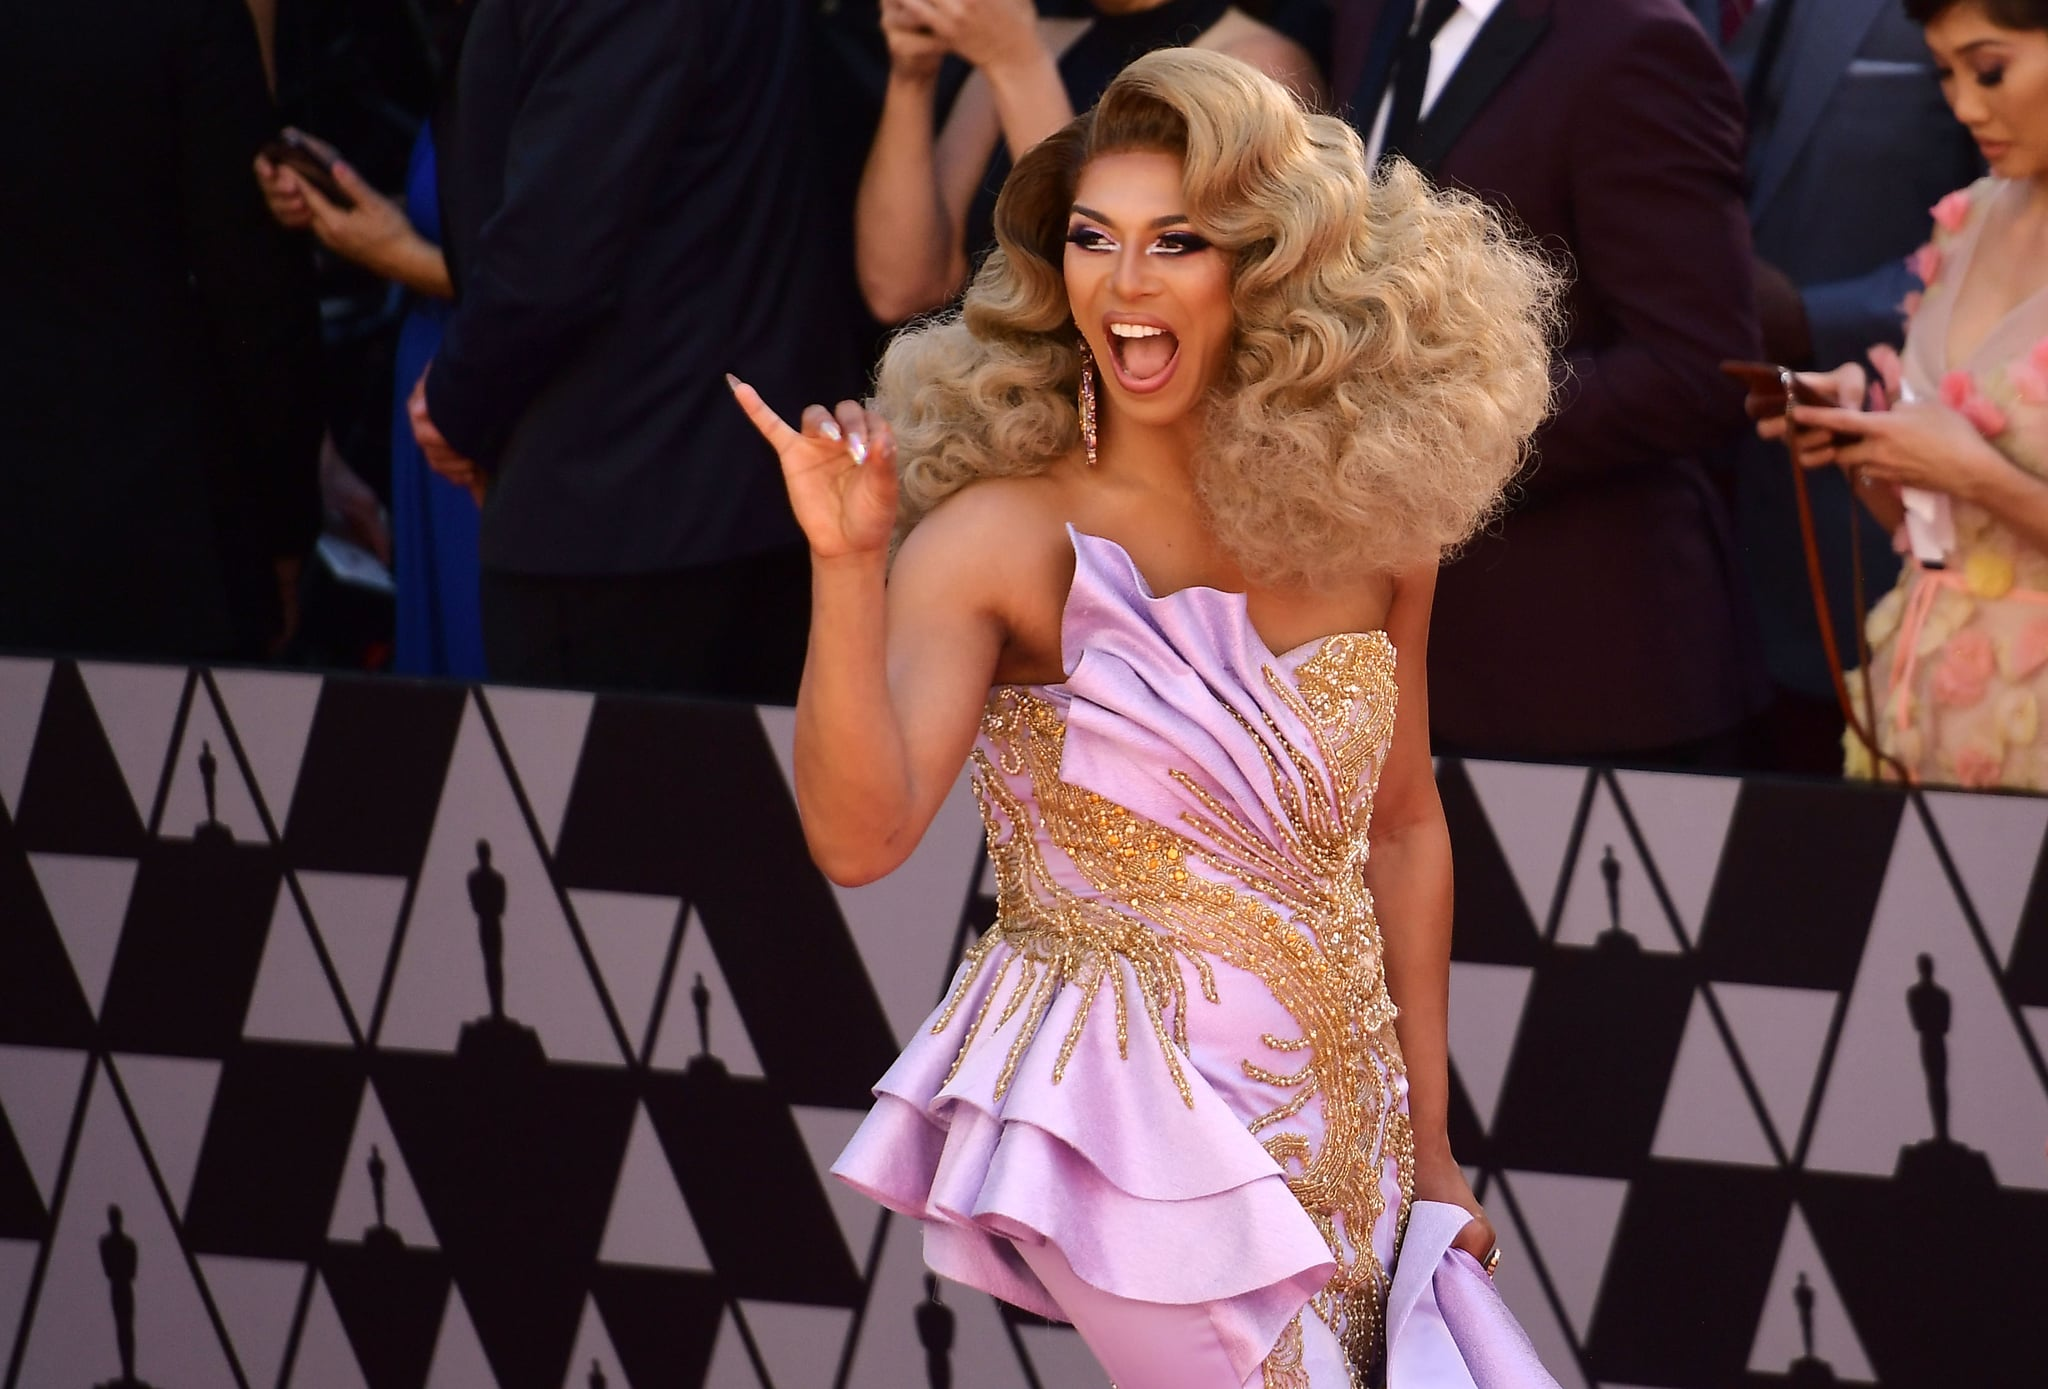 HOLLYWOOD, CALIFORNIA - FEBRUARY 24: Shangela attends the 91st Annual Academy Awards at Hollywood and Highland on February 24, 2019 in Hollywood, California. (Photo by Matt Winkelmeyer/Getty Images)